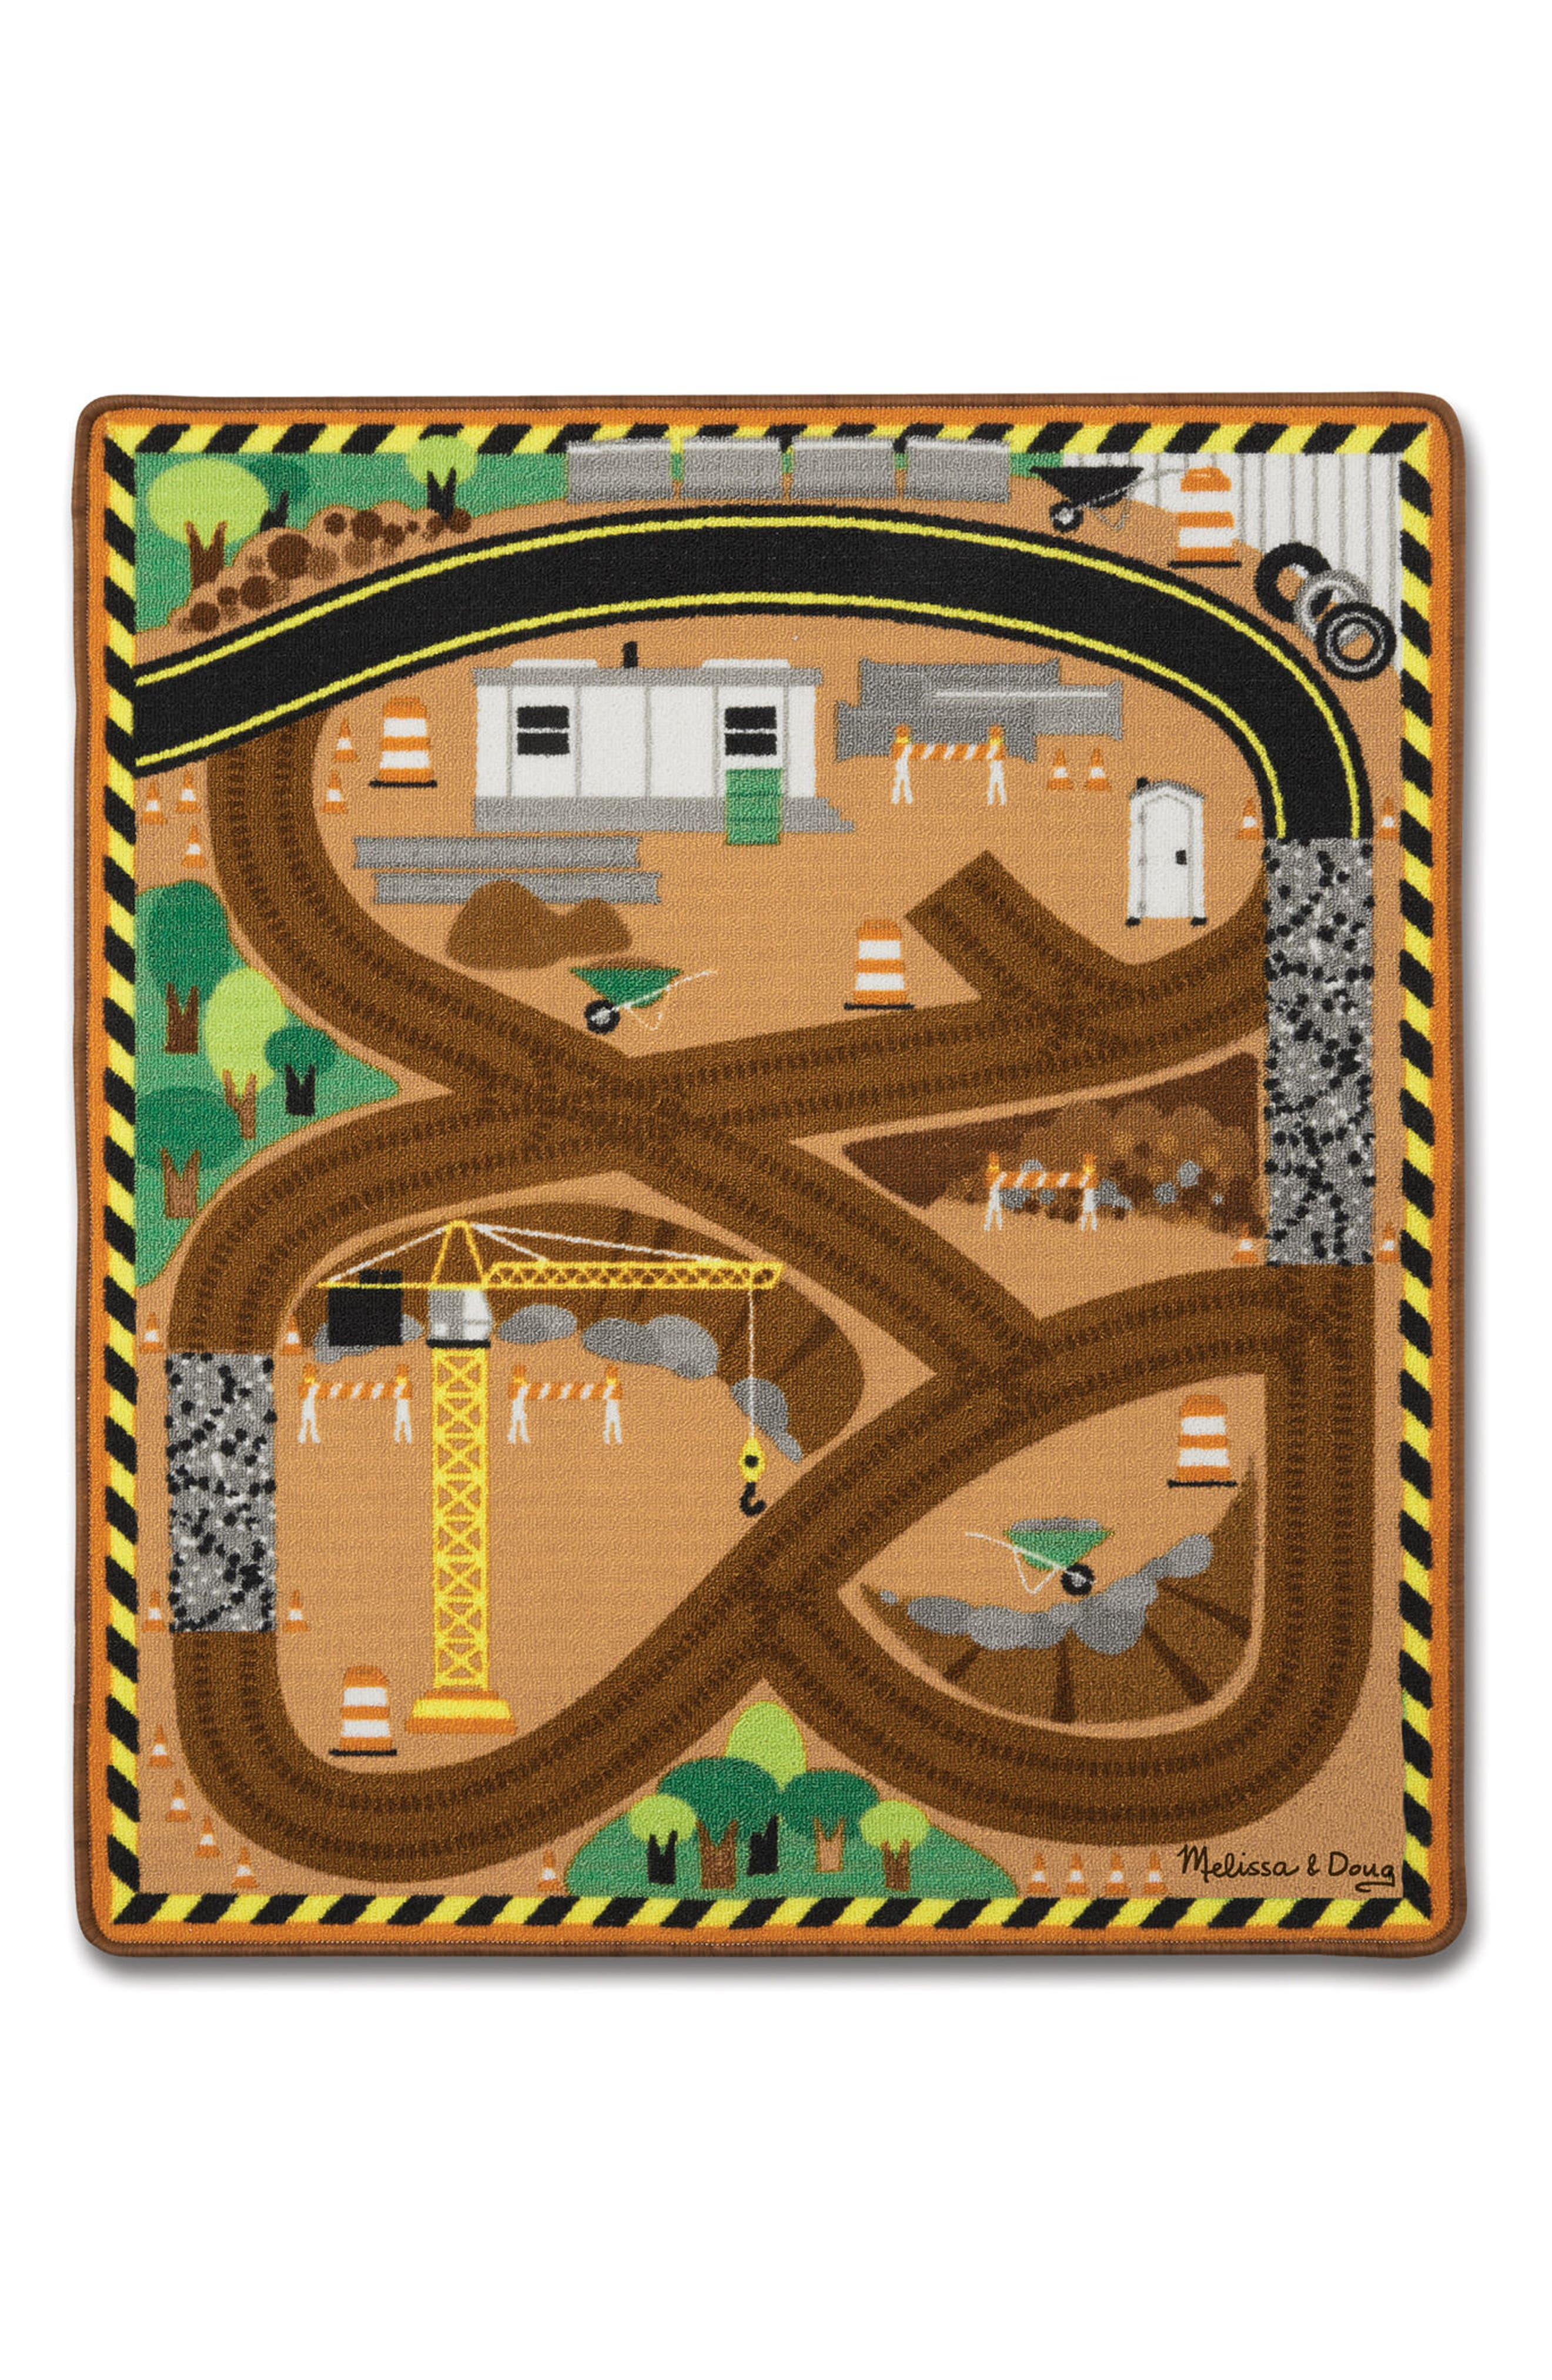 Round the Construction Zone Work Site Rug & Vehicle Set,                             Main thumbnail 1, color,                             GREEN